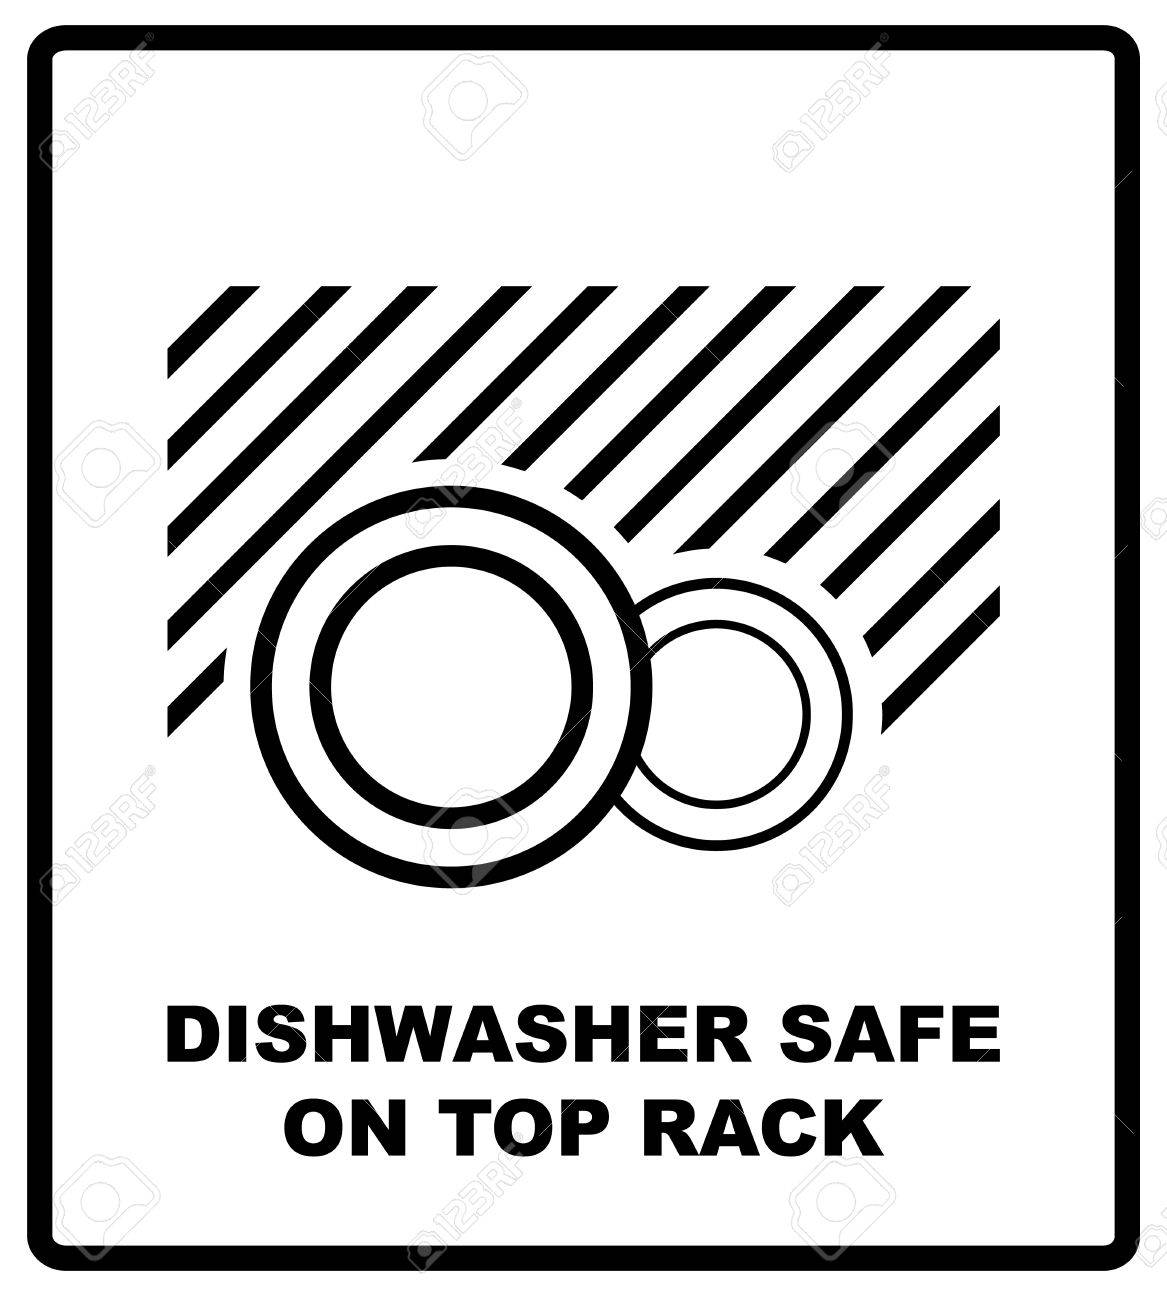 Dishwasher safe on top rack symbol isolated dishwasher safe sign dishwasher safe on top rack symbol isolated dishwasher safe sign isolated vector illustration biocorpaavc Images